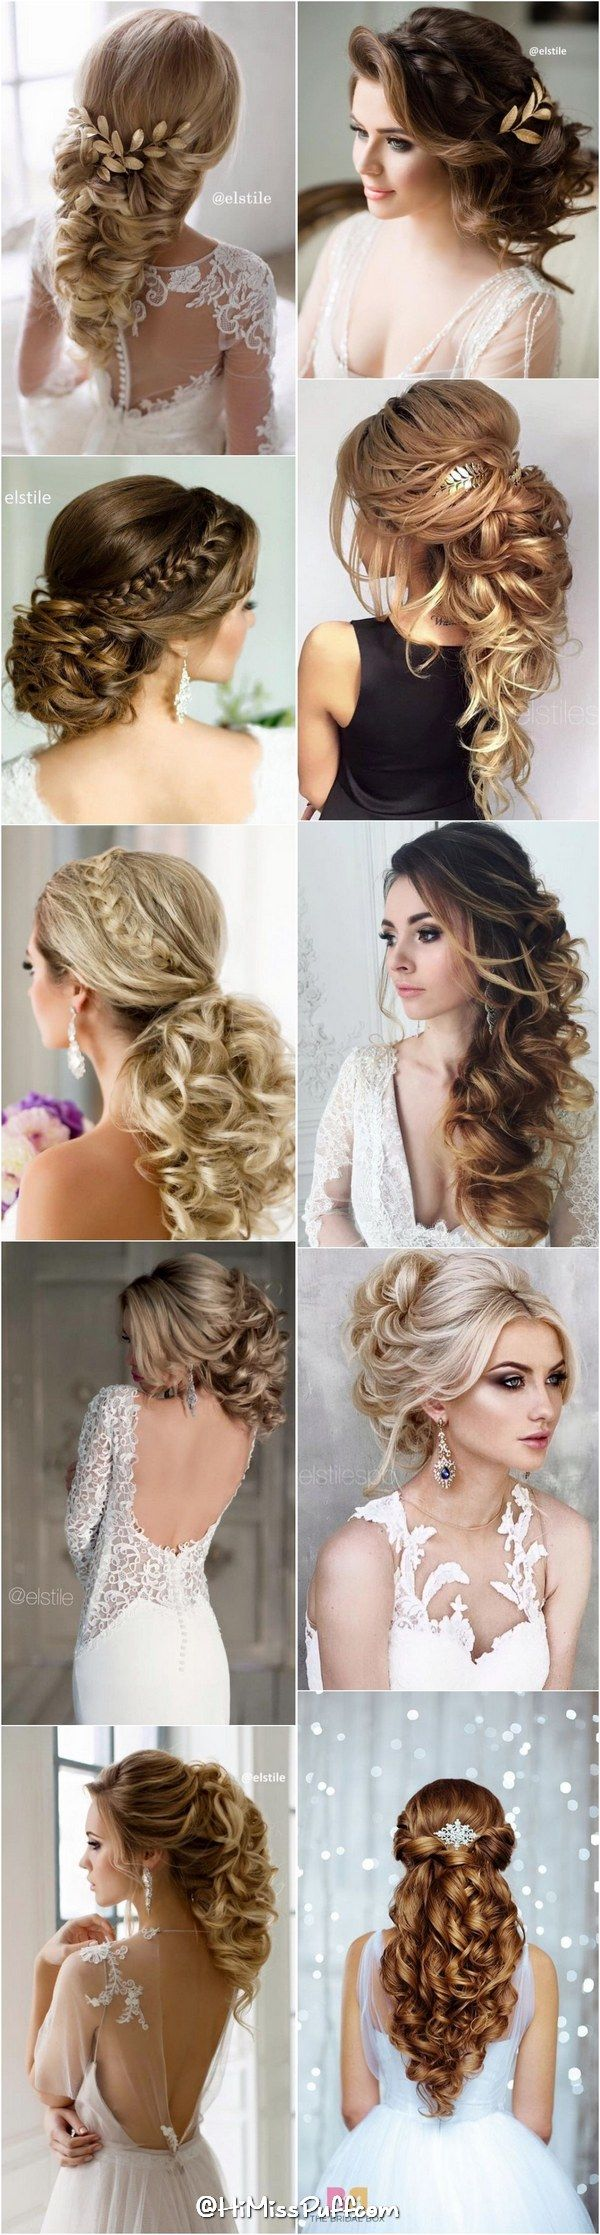 649 Best Wedding Hair Ideas Images On Pinterest Bridal Hairstyles And Styles